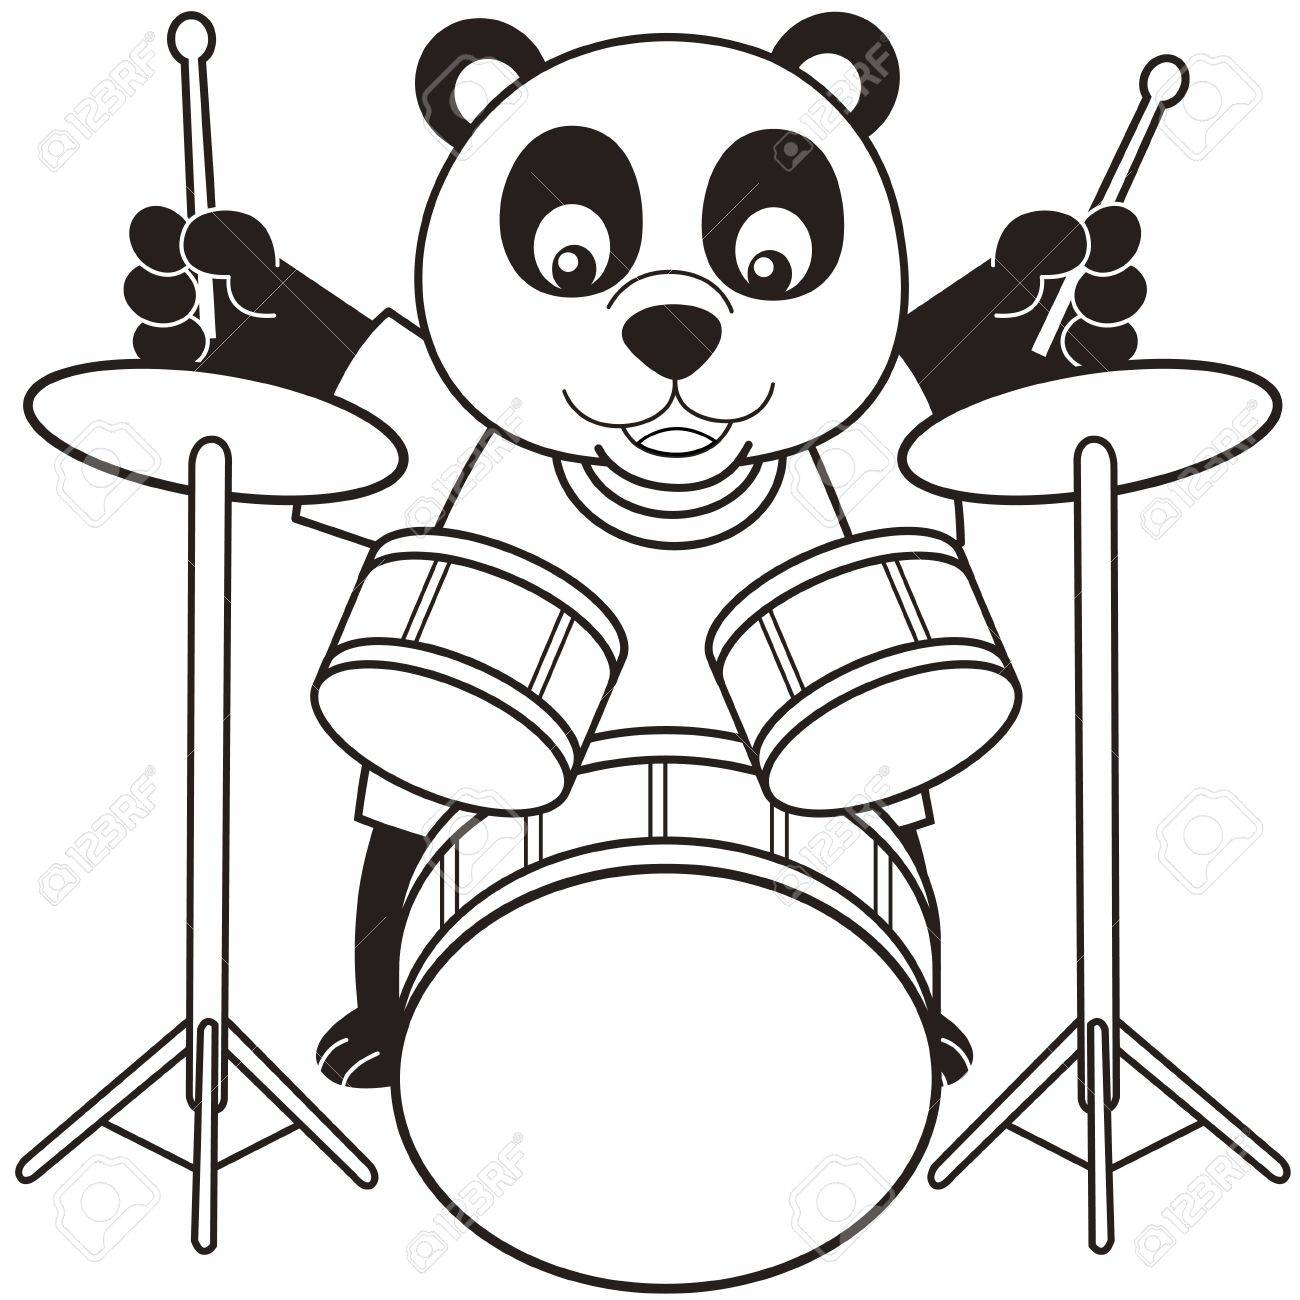 Coloring pictures drums - Drummer Outline Cartoon Panda Playing Drums Black And White Illustration